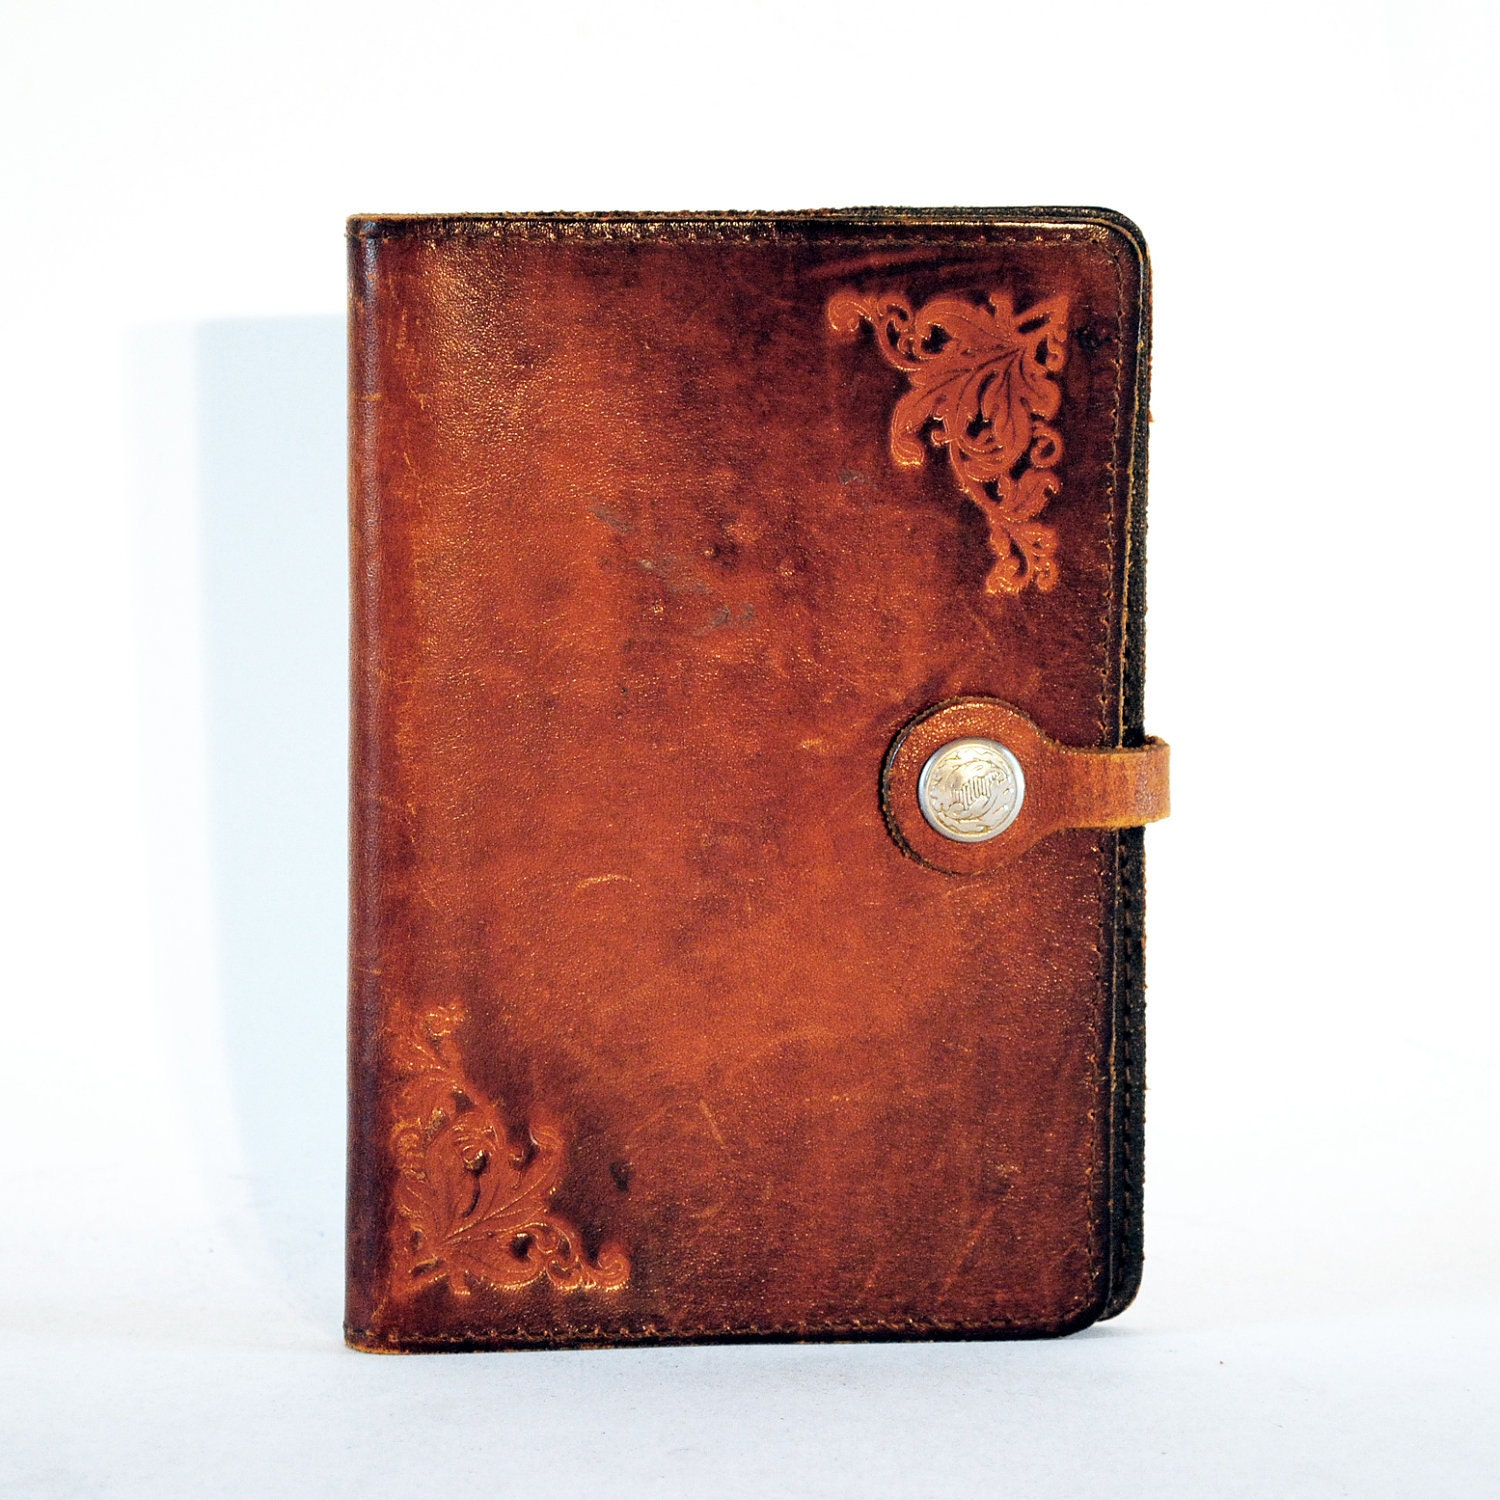 Leather Book Cover Material : Tooled leather journal book cover w snap closure